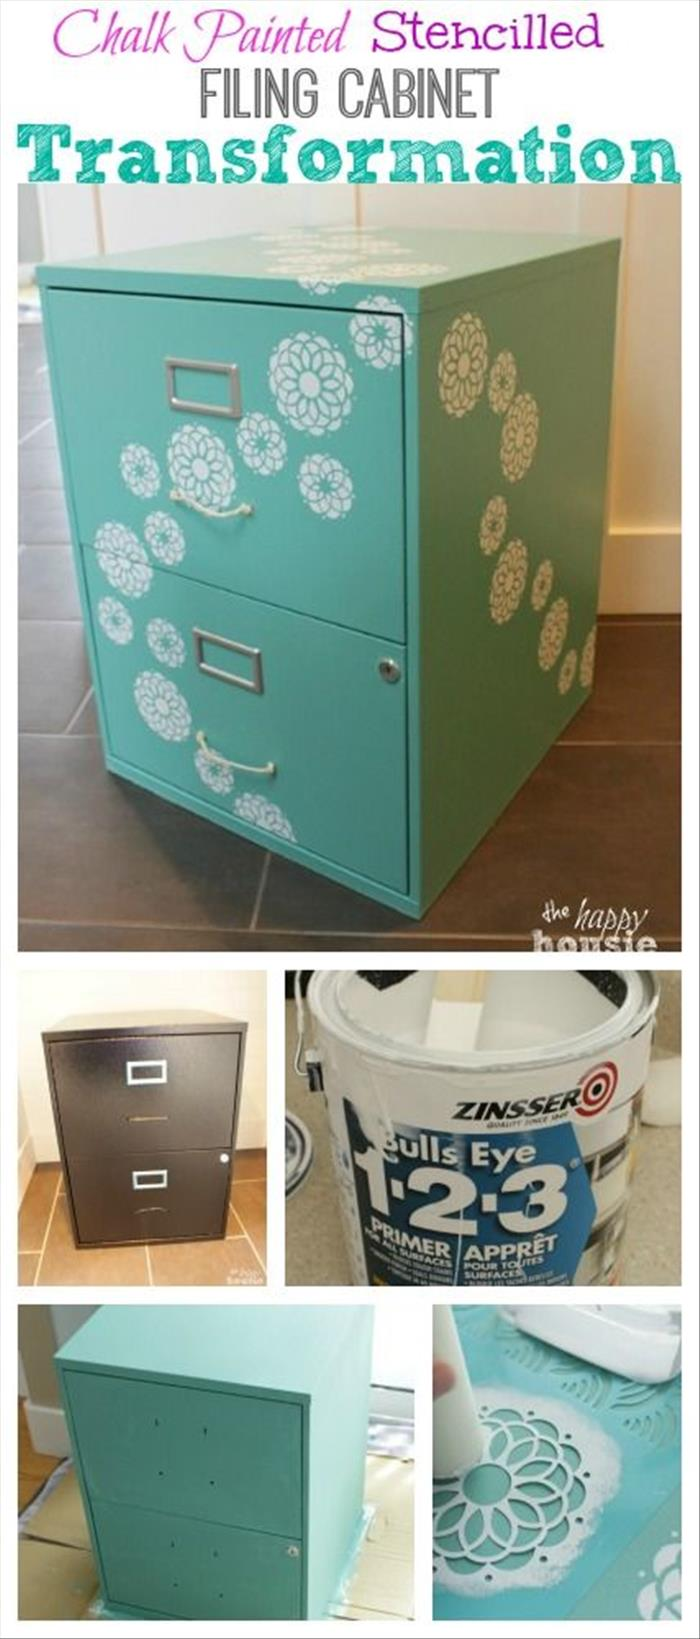 Chalk Painted Stencilled Filing Cabinet